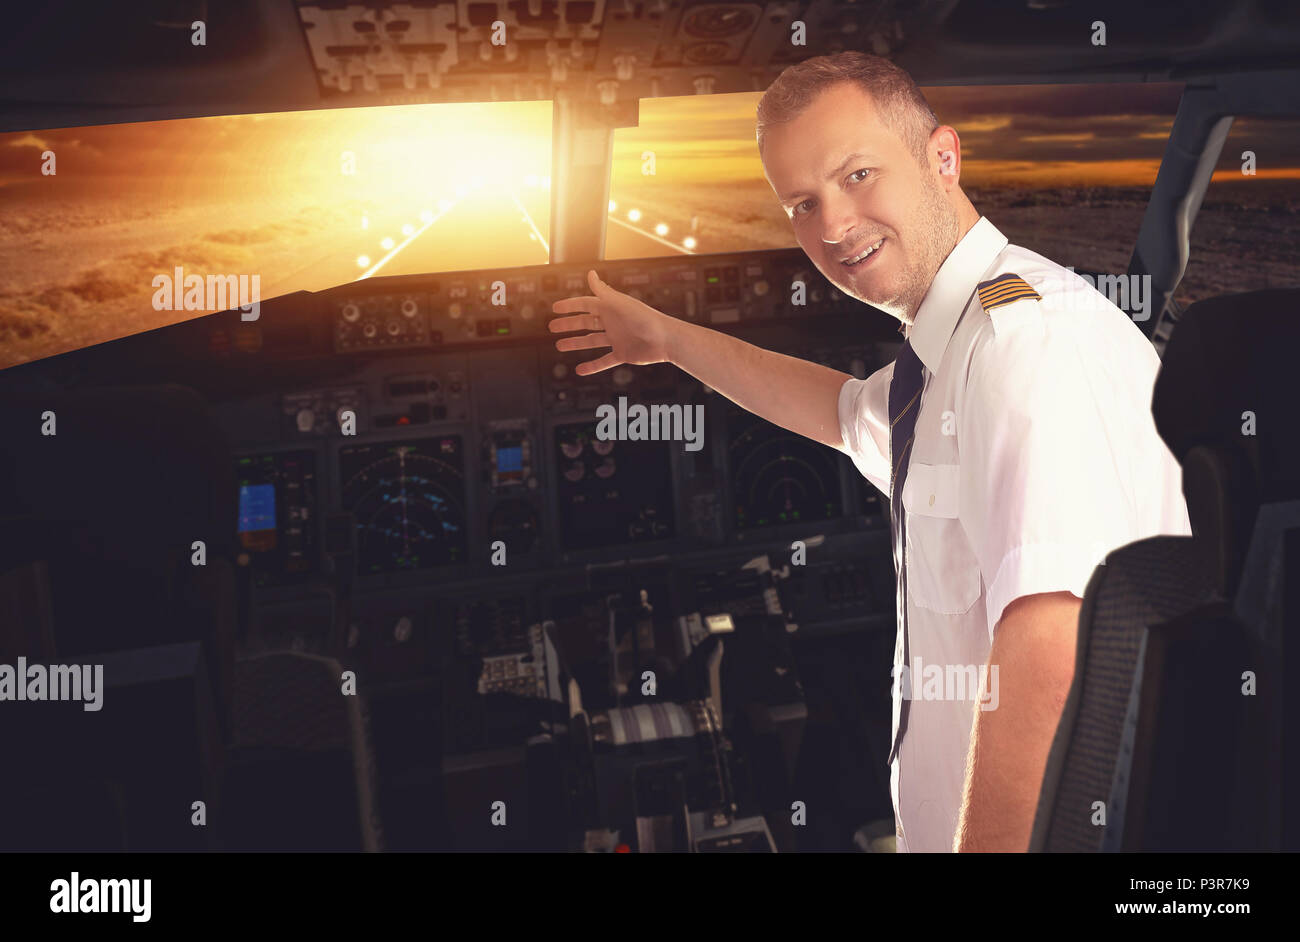 landing and smiling pilot of the plane - Stock Image